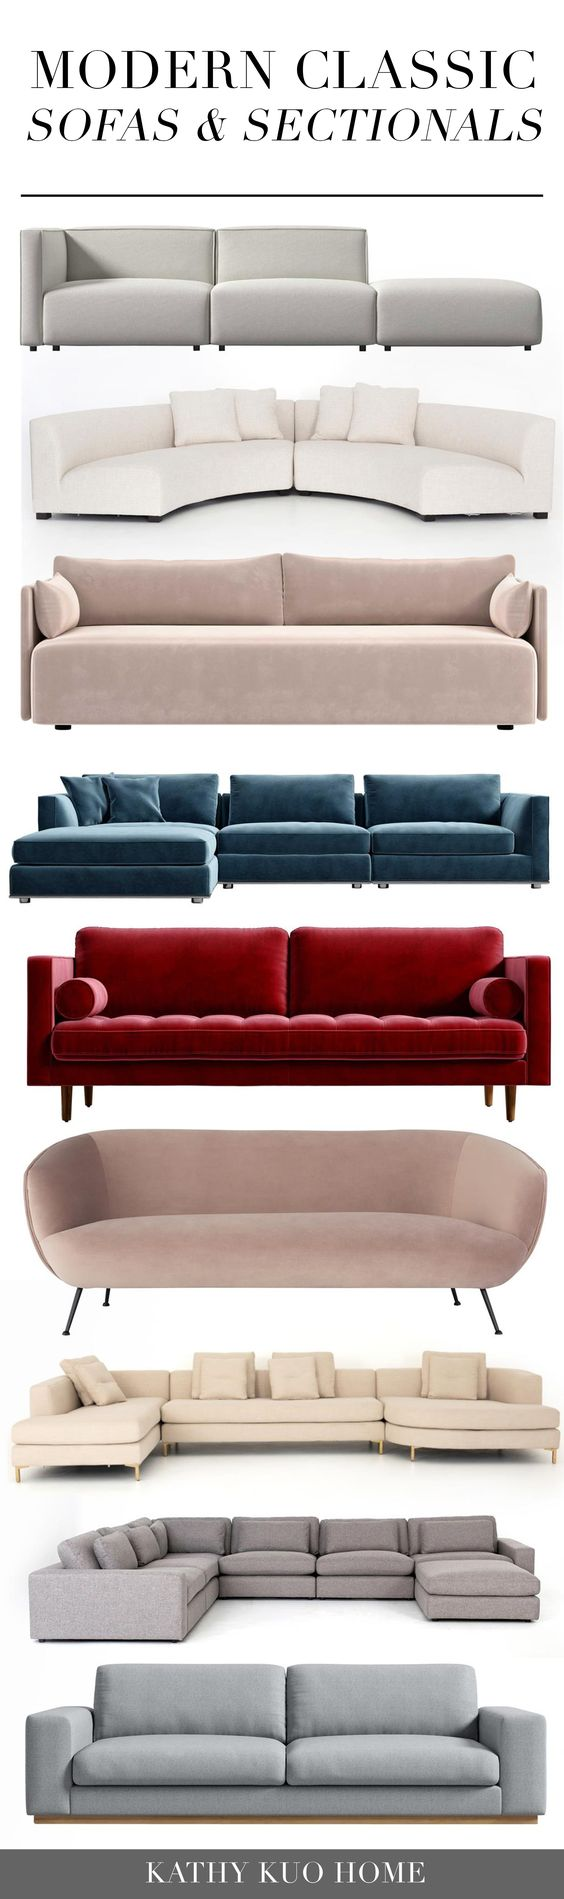 sectional-dofas-trends